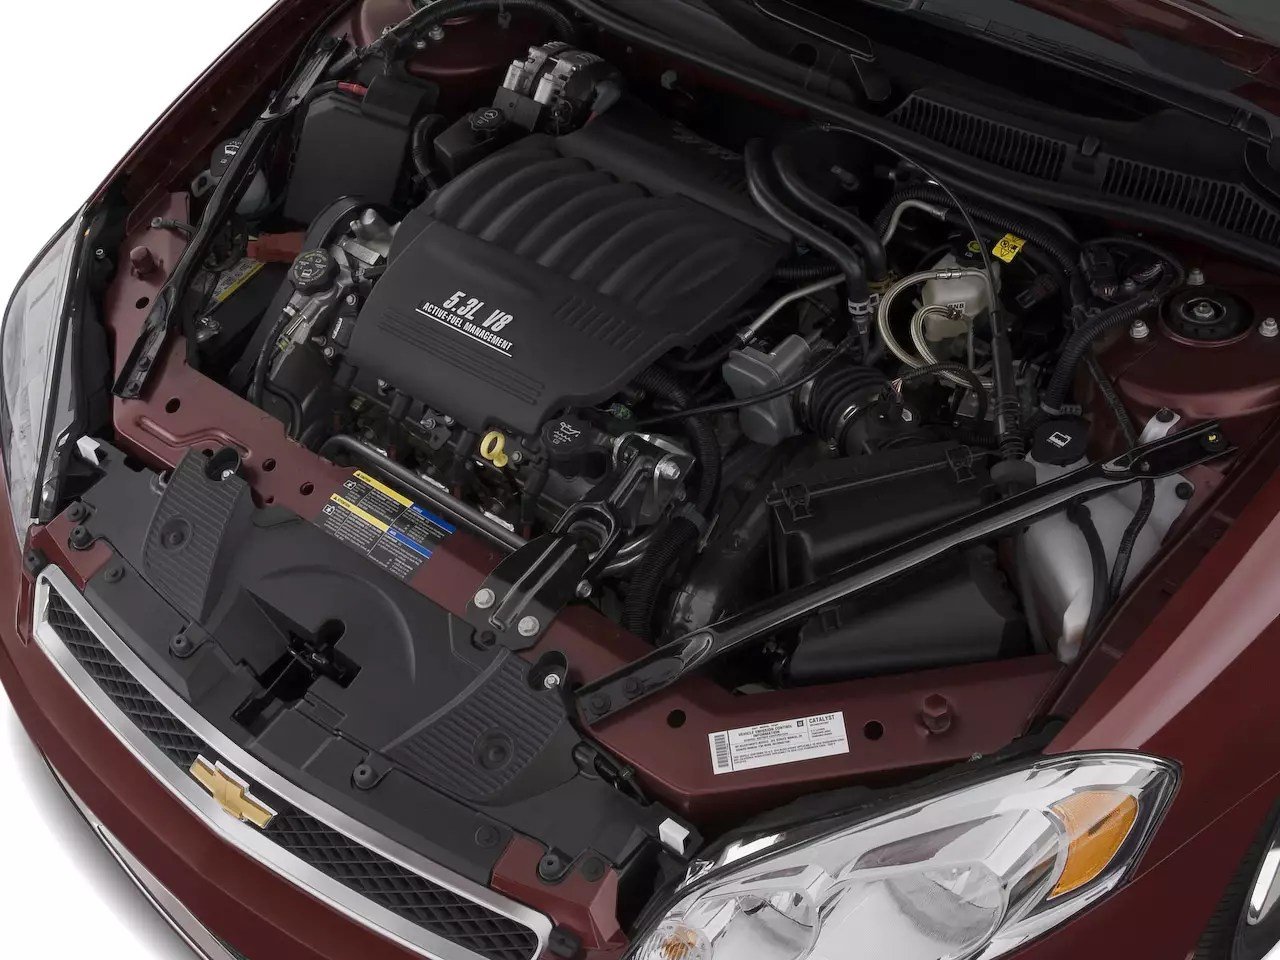 hight resolution of ls4 engine specs performance bore stroke cylinder heads cam specs more